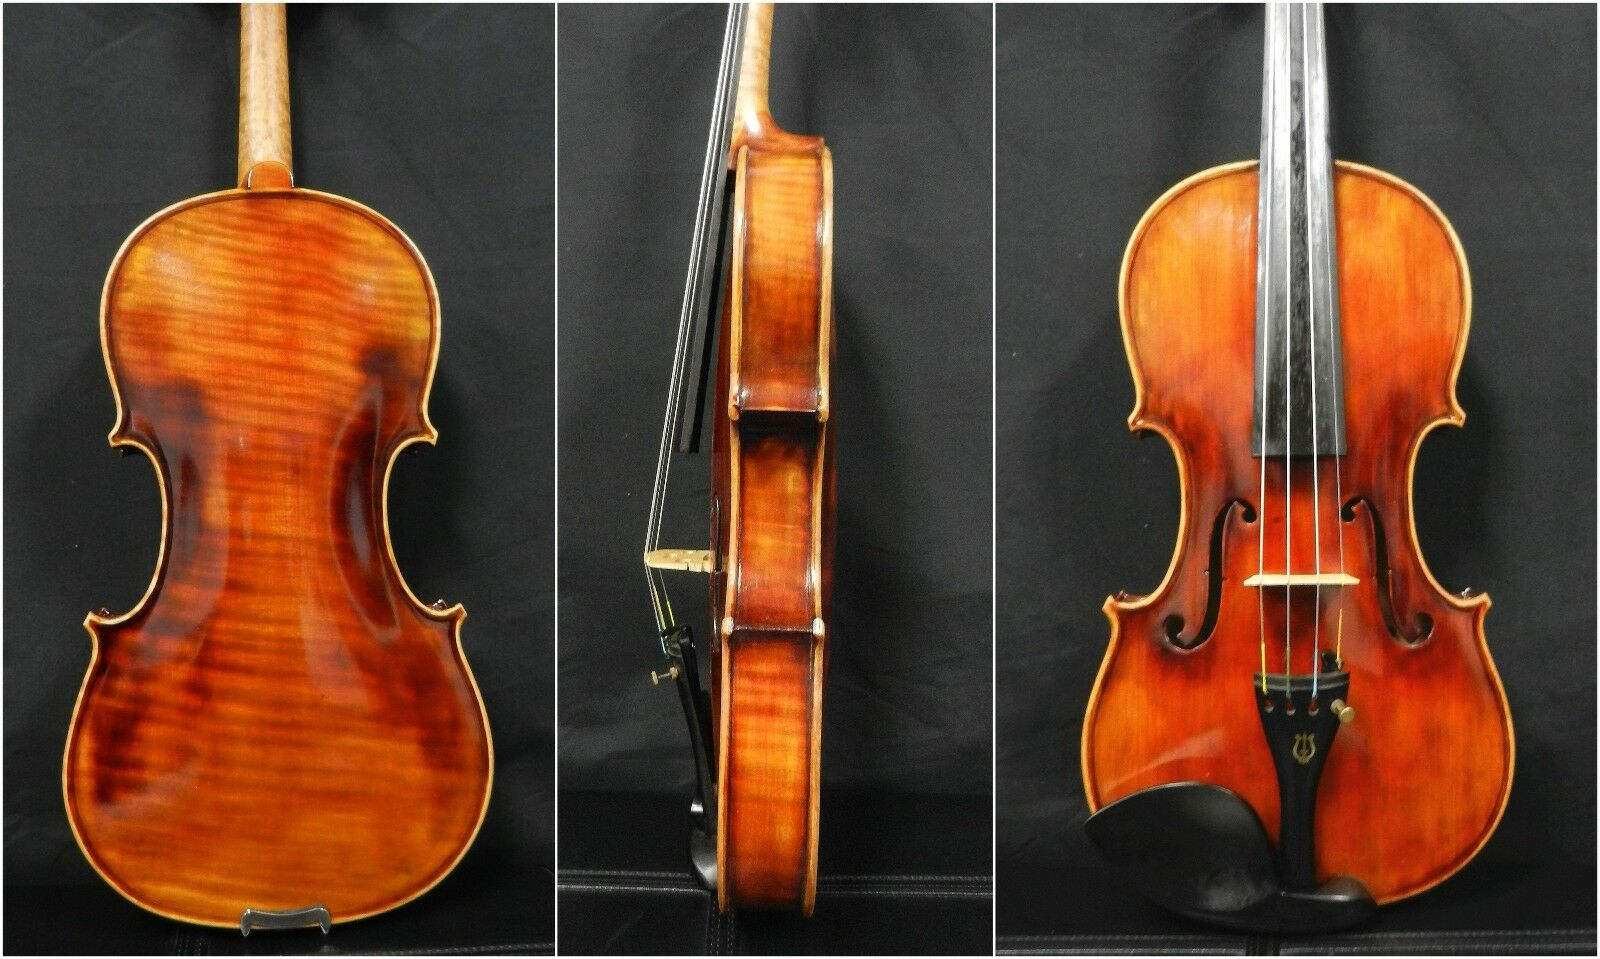 Fine Professional Violin 4 4 Full Größe,Dominant Strings ,One Piece Back